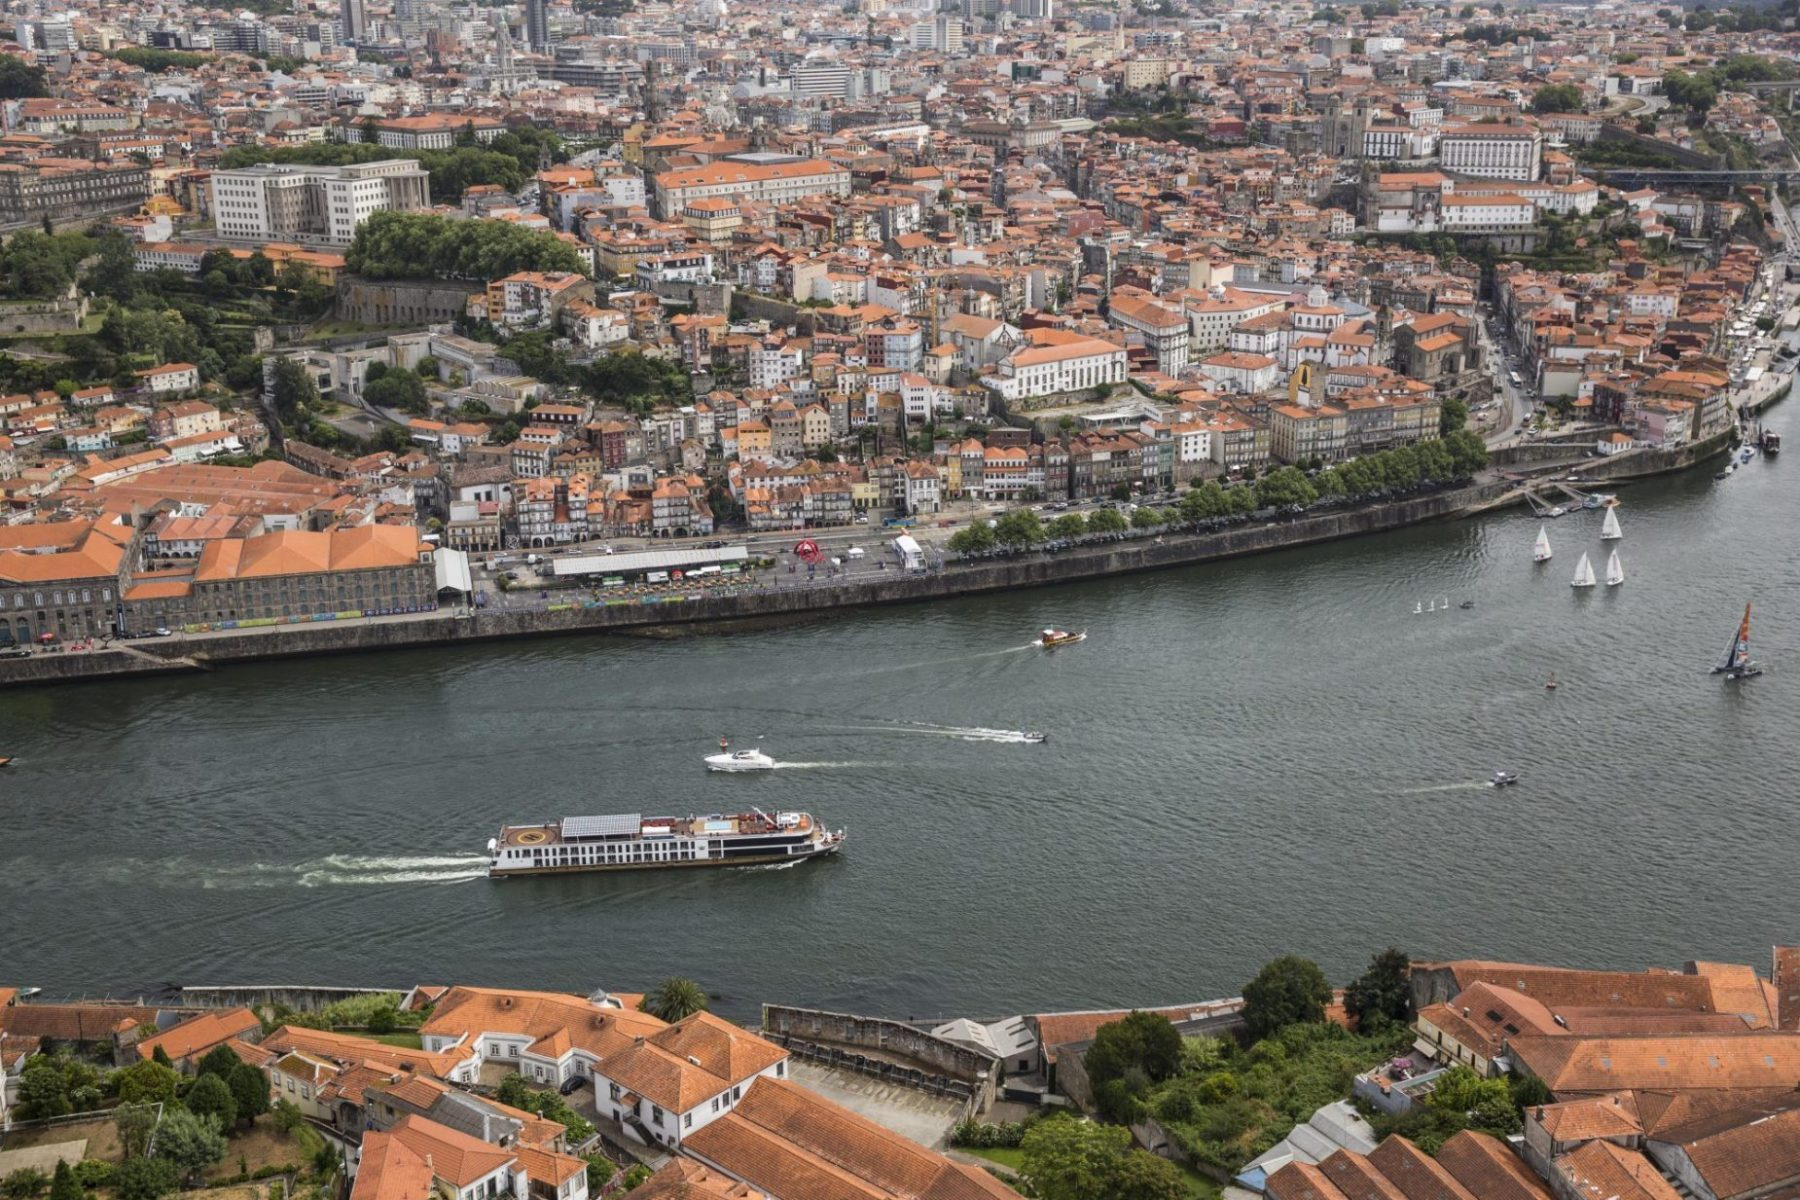 Ama Waterways flod cruise på Douro Floden i Portugal